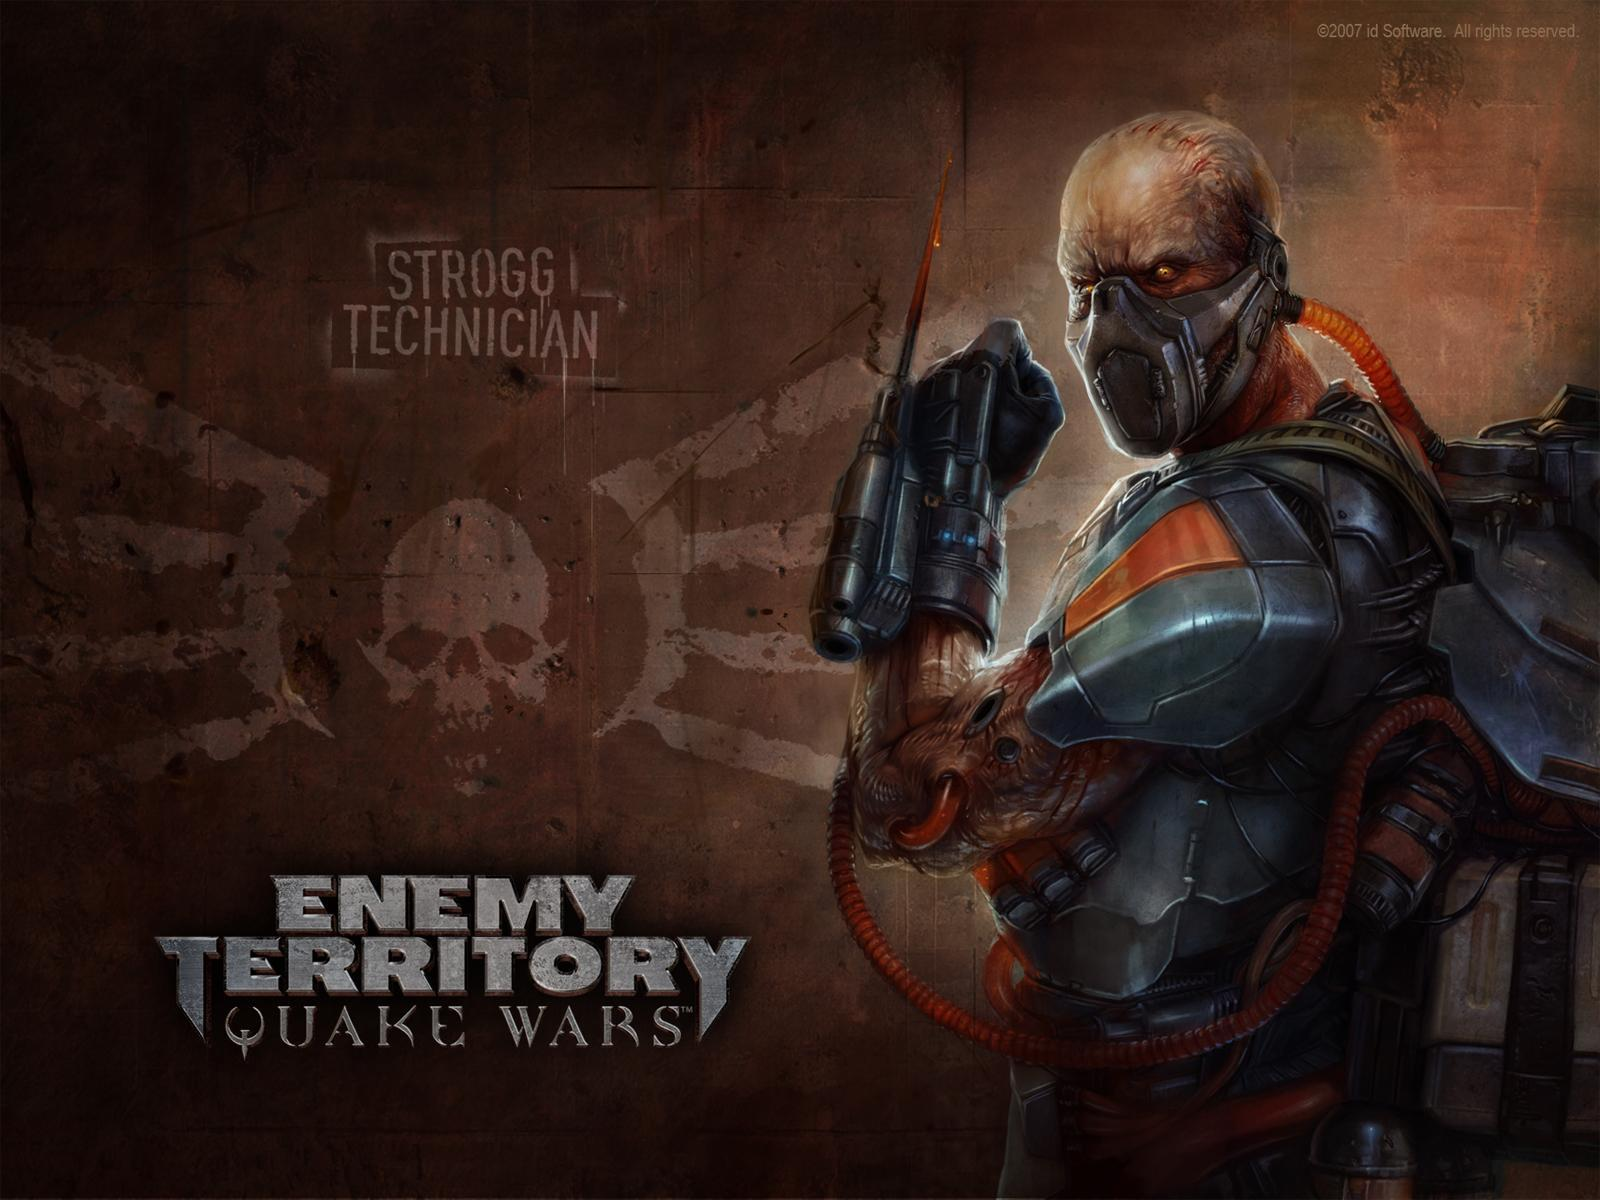 Обои Enemy Territory:Quake Wars- Техник 1600x1200